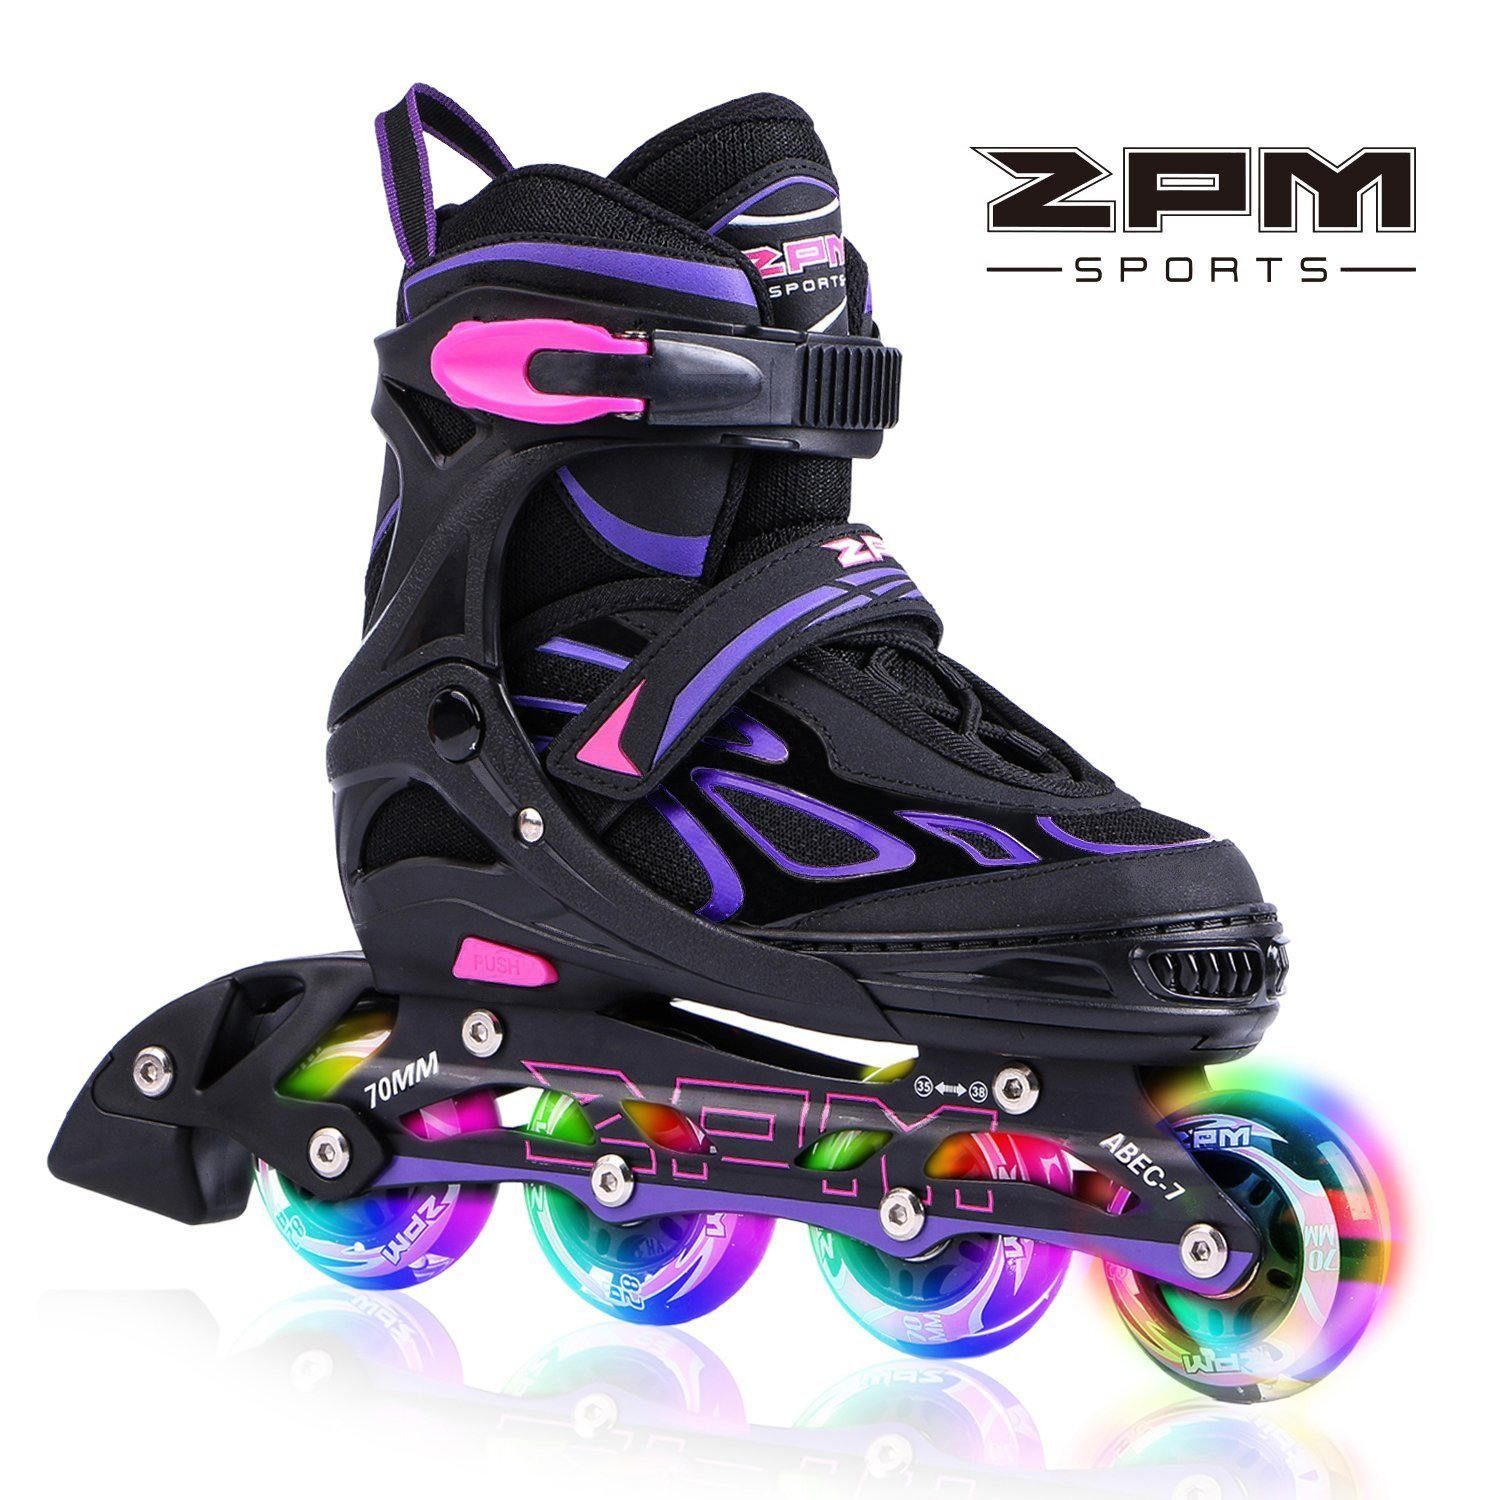 2pm Sports Vinal Girls Adjustable Flashing Inline Skates, All Wheels Light Up, Fun Illuminating Rollerblades for Kids and Ladies - Violet M